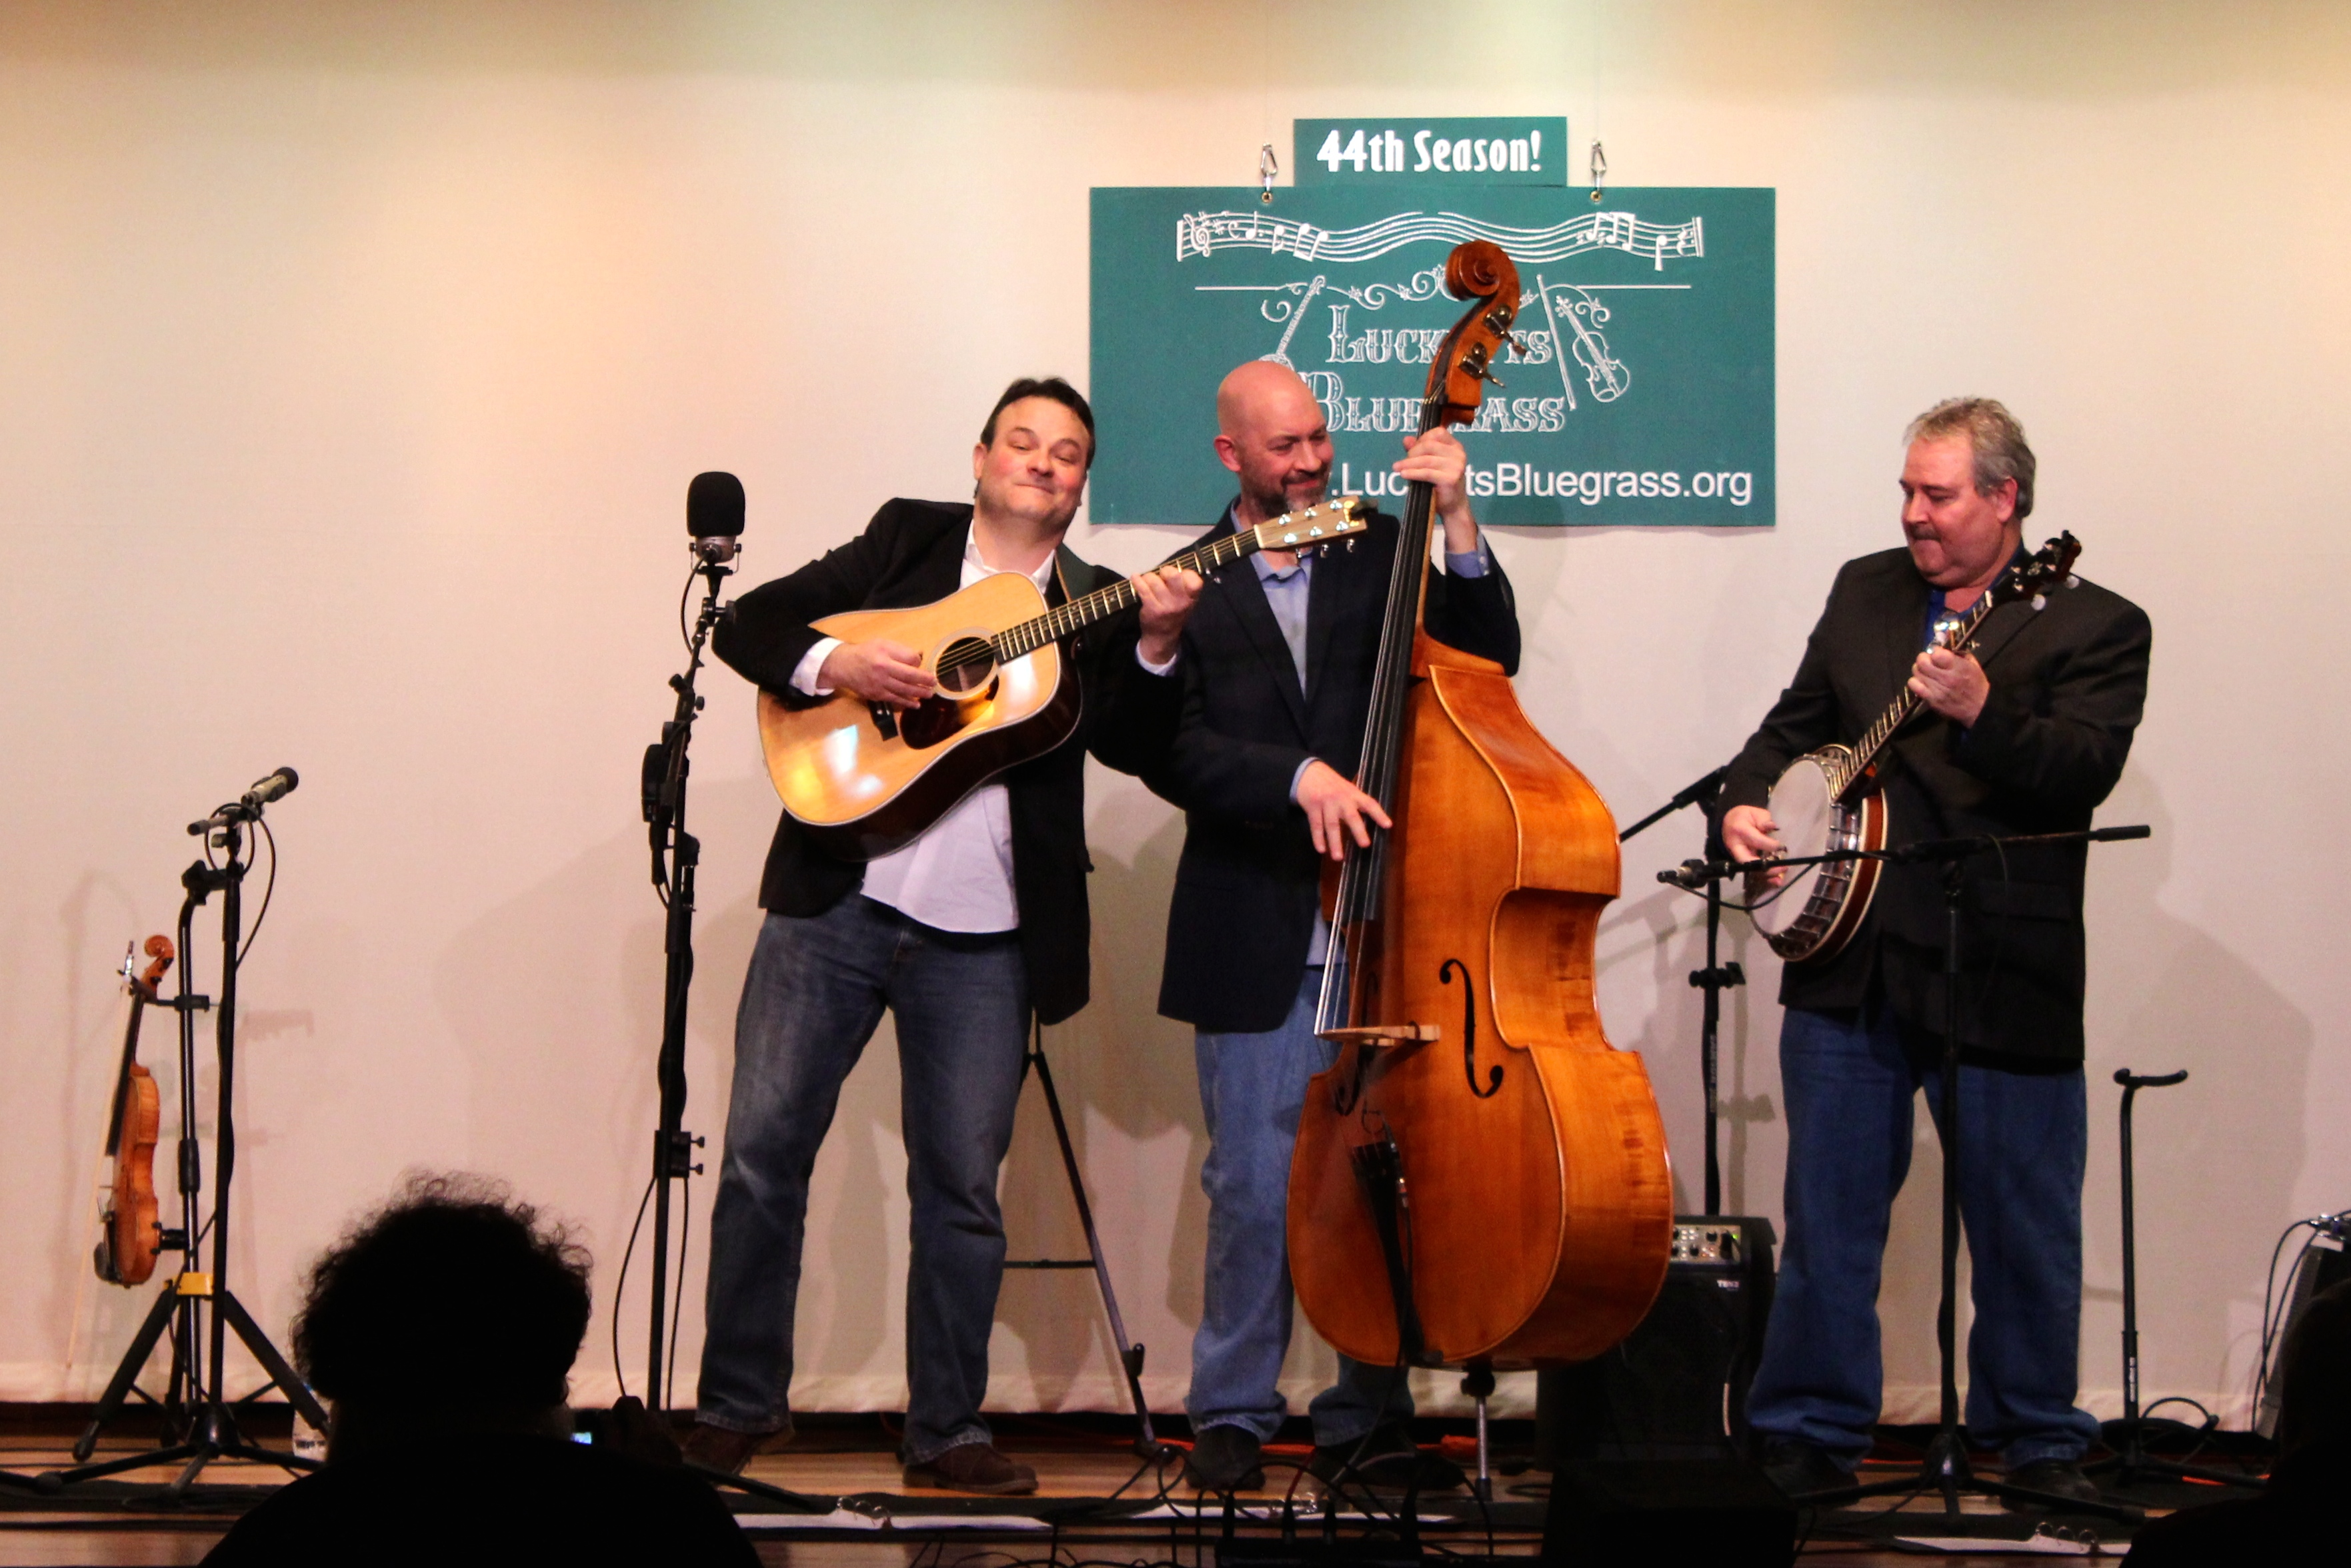 """The Mike Mitchell Trio won over the Lucketts Bluegrass crowd with their fresh take on traditional American music.  Whether performing original tunes, bluegrass classics, or fiddle tunes, they did so with joy and skilled musicianship."" ~ Karen Capell Lucketts Bluegrass"